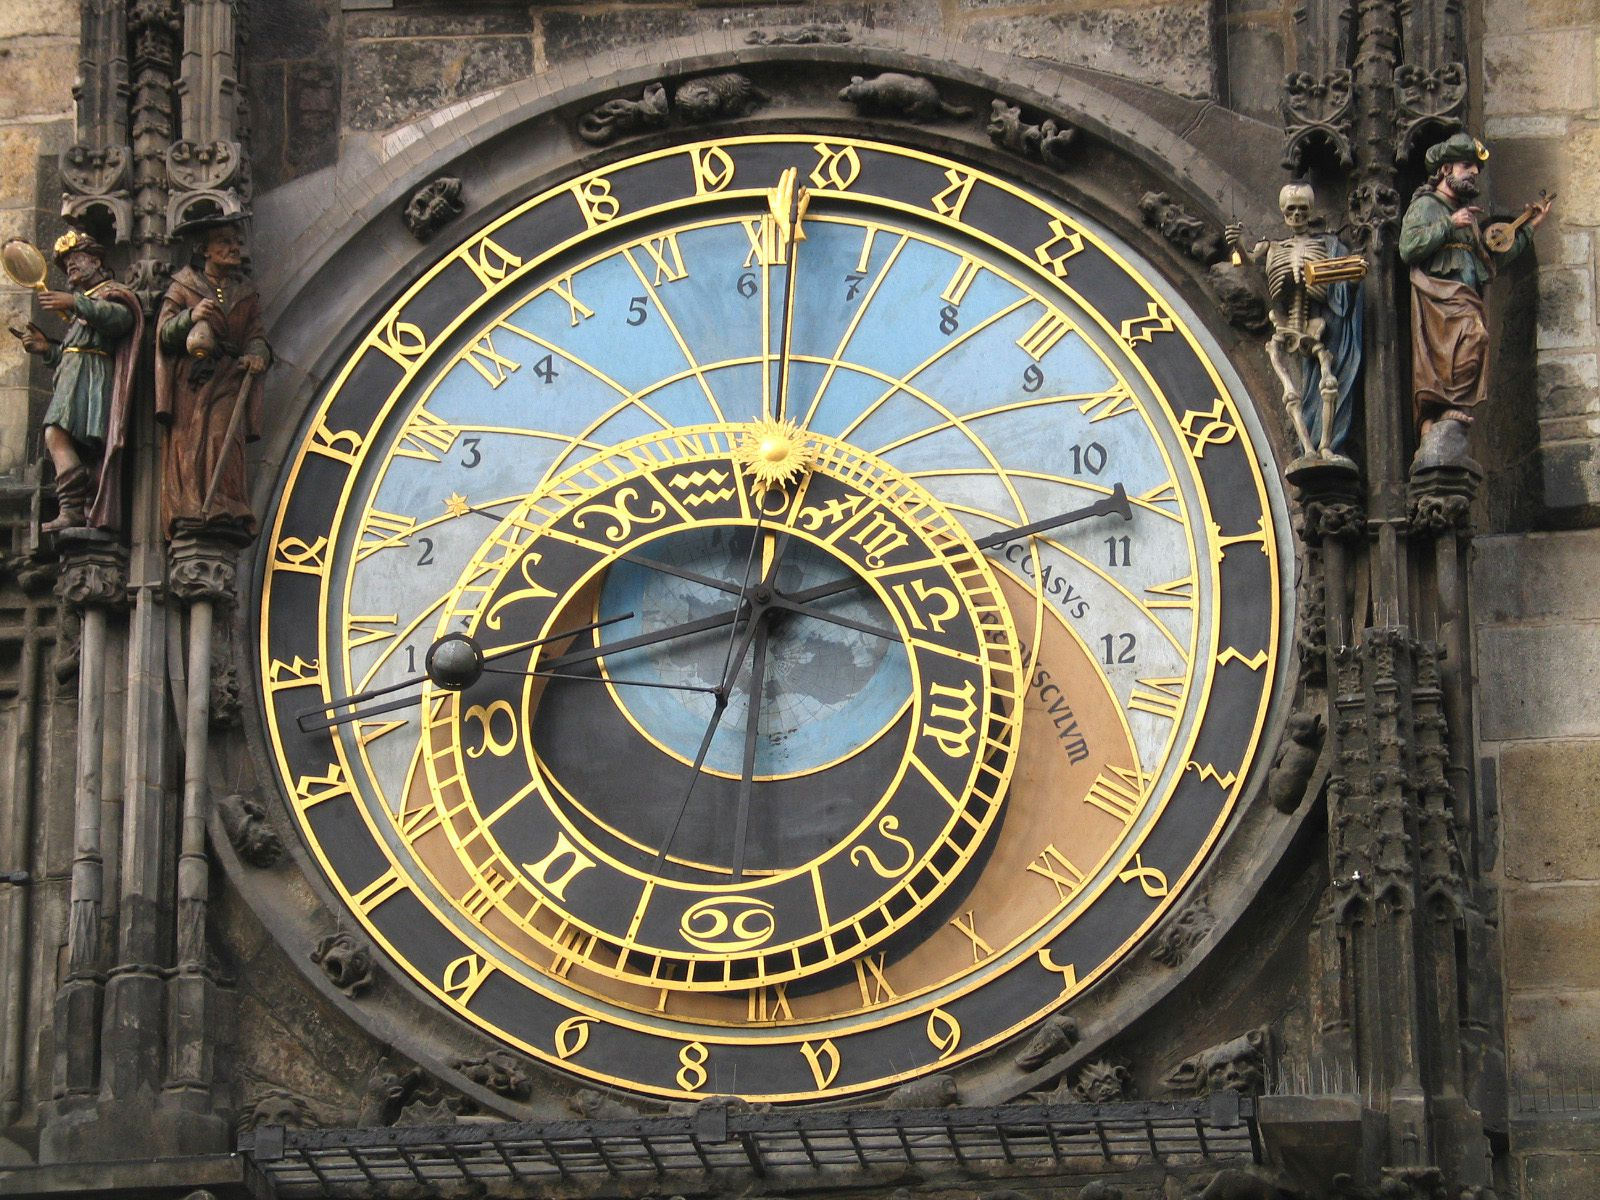 The 24-hour clock is generally used in the Czech Republic in printed materials and on digital clocks. The 12-hour clock is also used when speaking colloquially or in relation to analogue clocks.